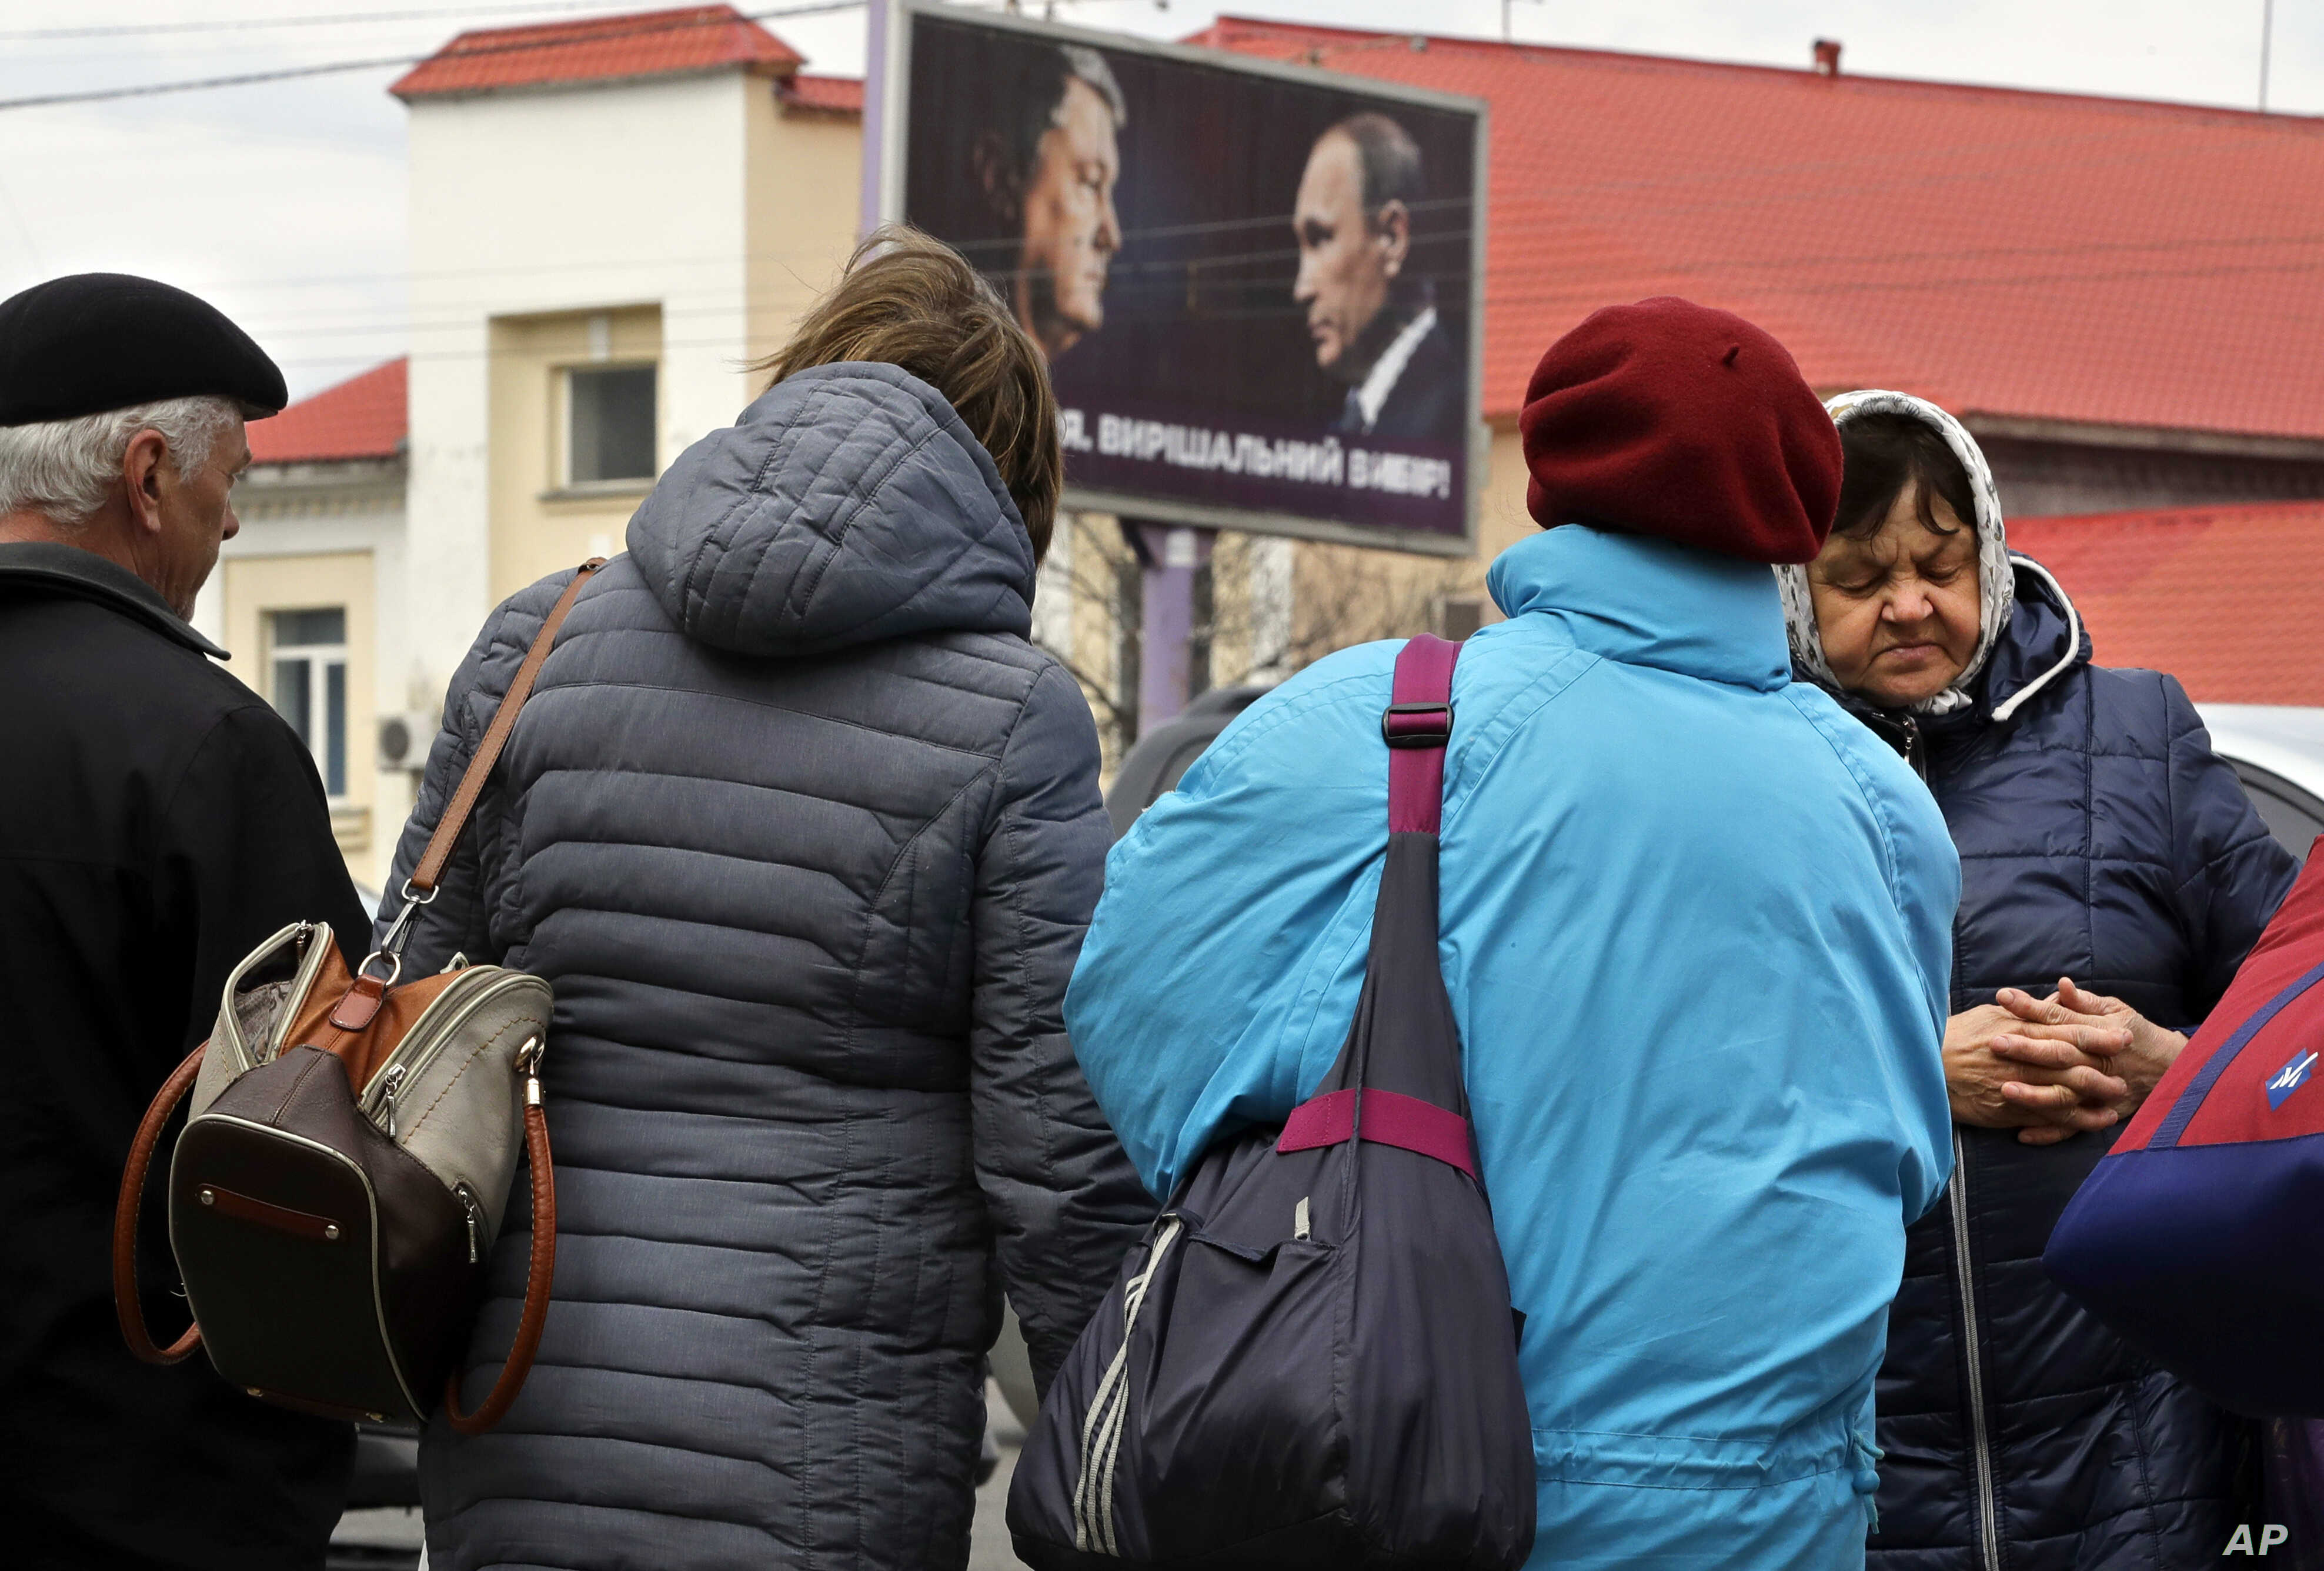 People stand on the street with a billboard depicting Ukraine's President Petro Poroshenko and Russian President Vladimir Putin looking at each other om the background, in Kyiv, Ukraine, April 17, 2019.